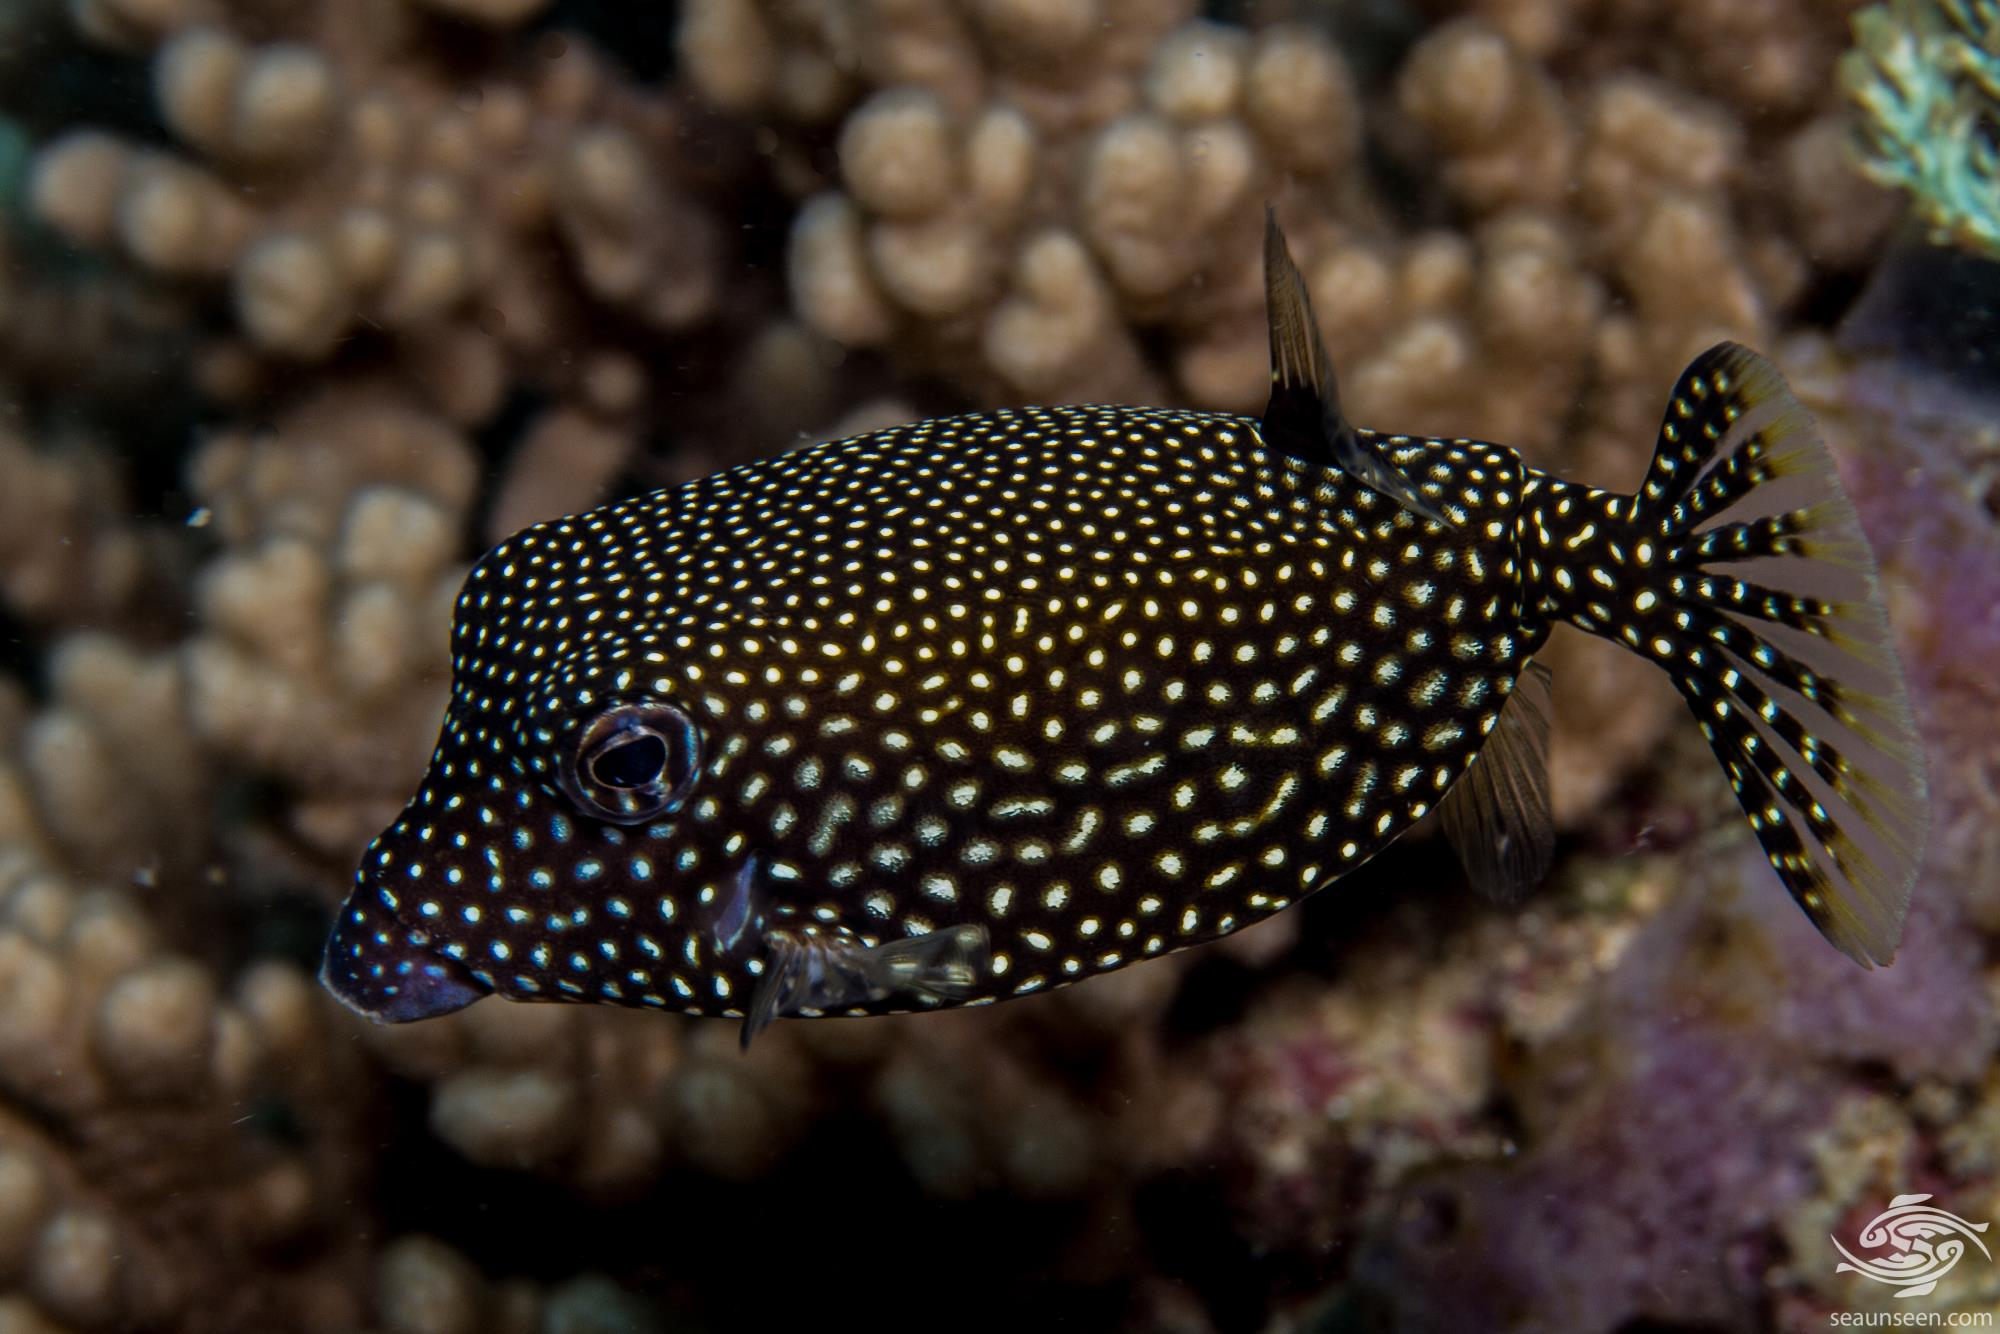 white spotted boxfish (Ostracion meleagris) also known as the spotted boxfish, blue boxfish and black boxfish